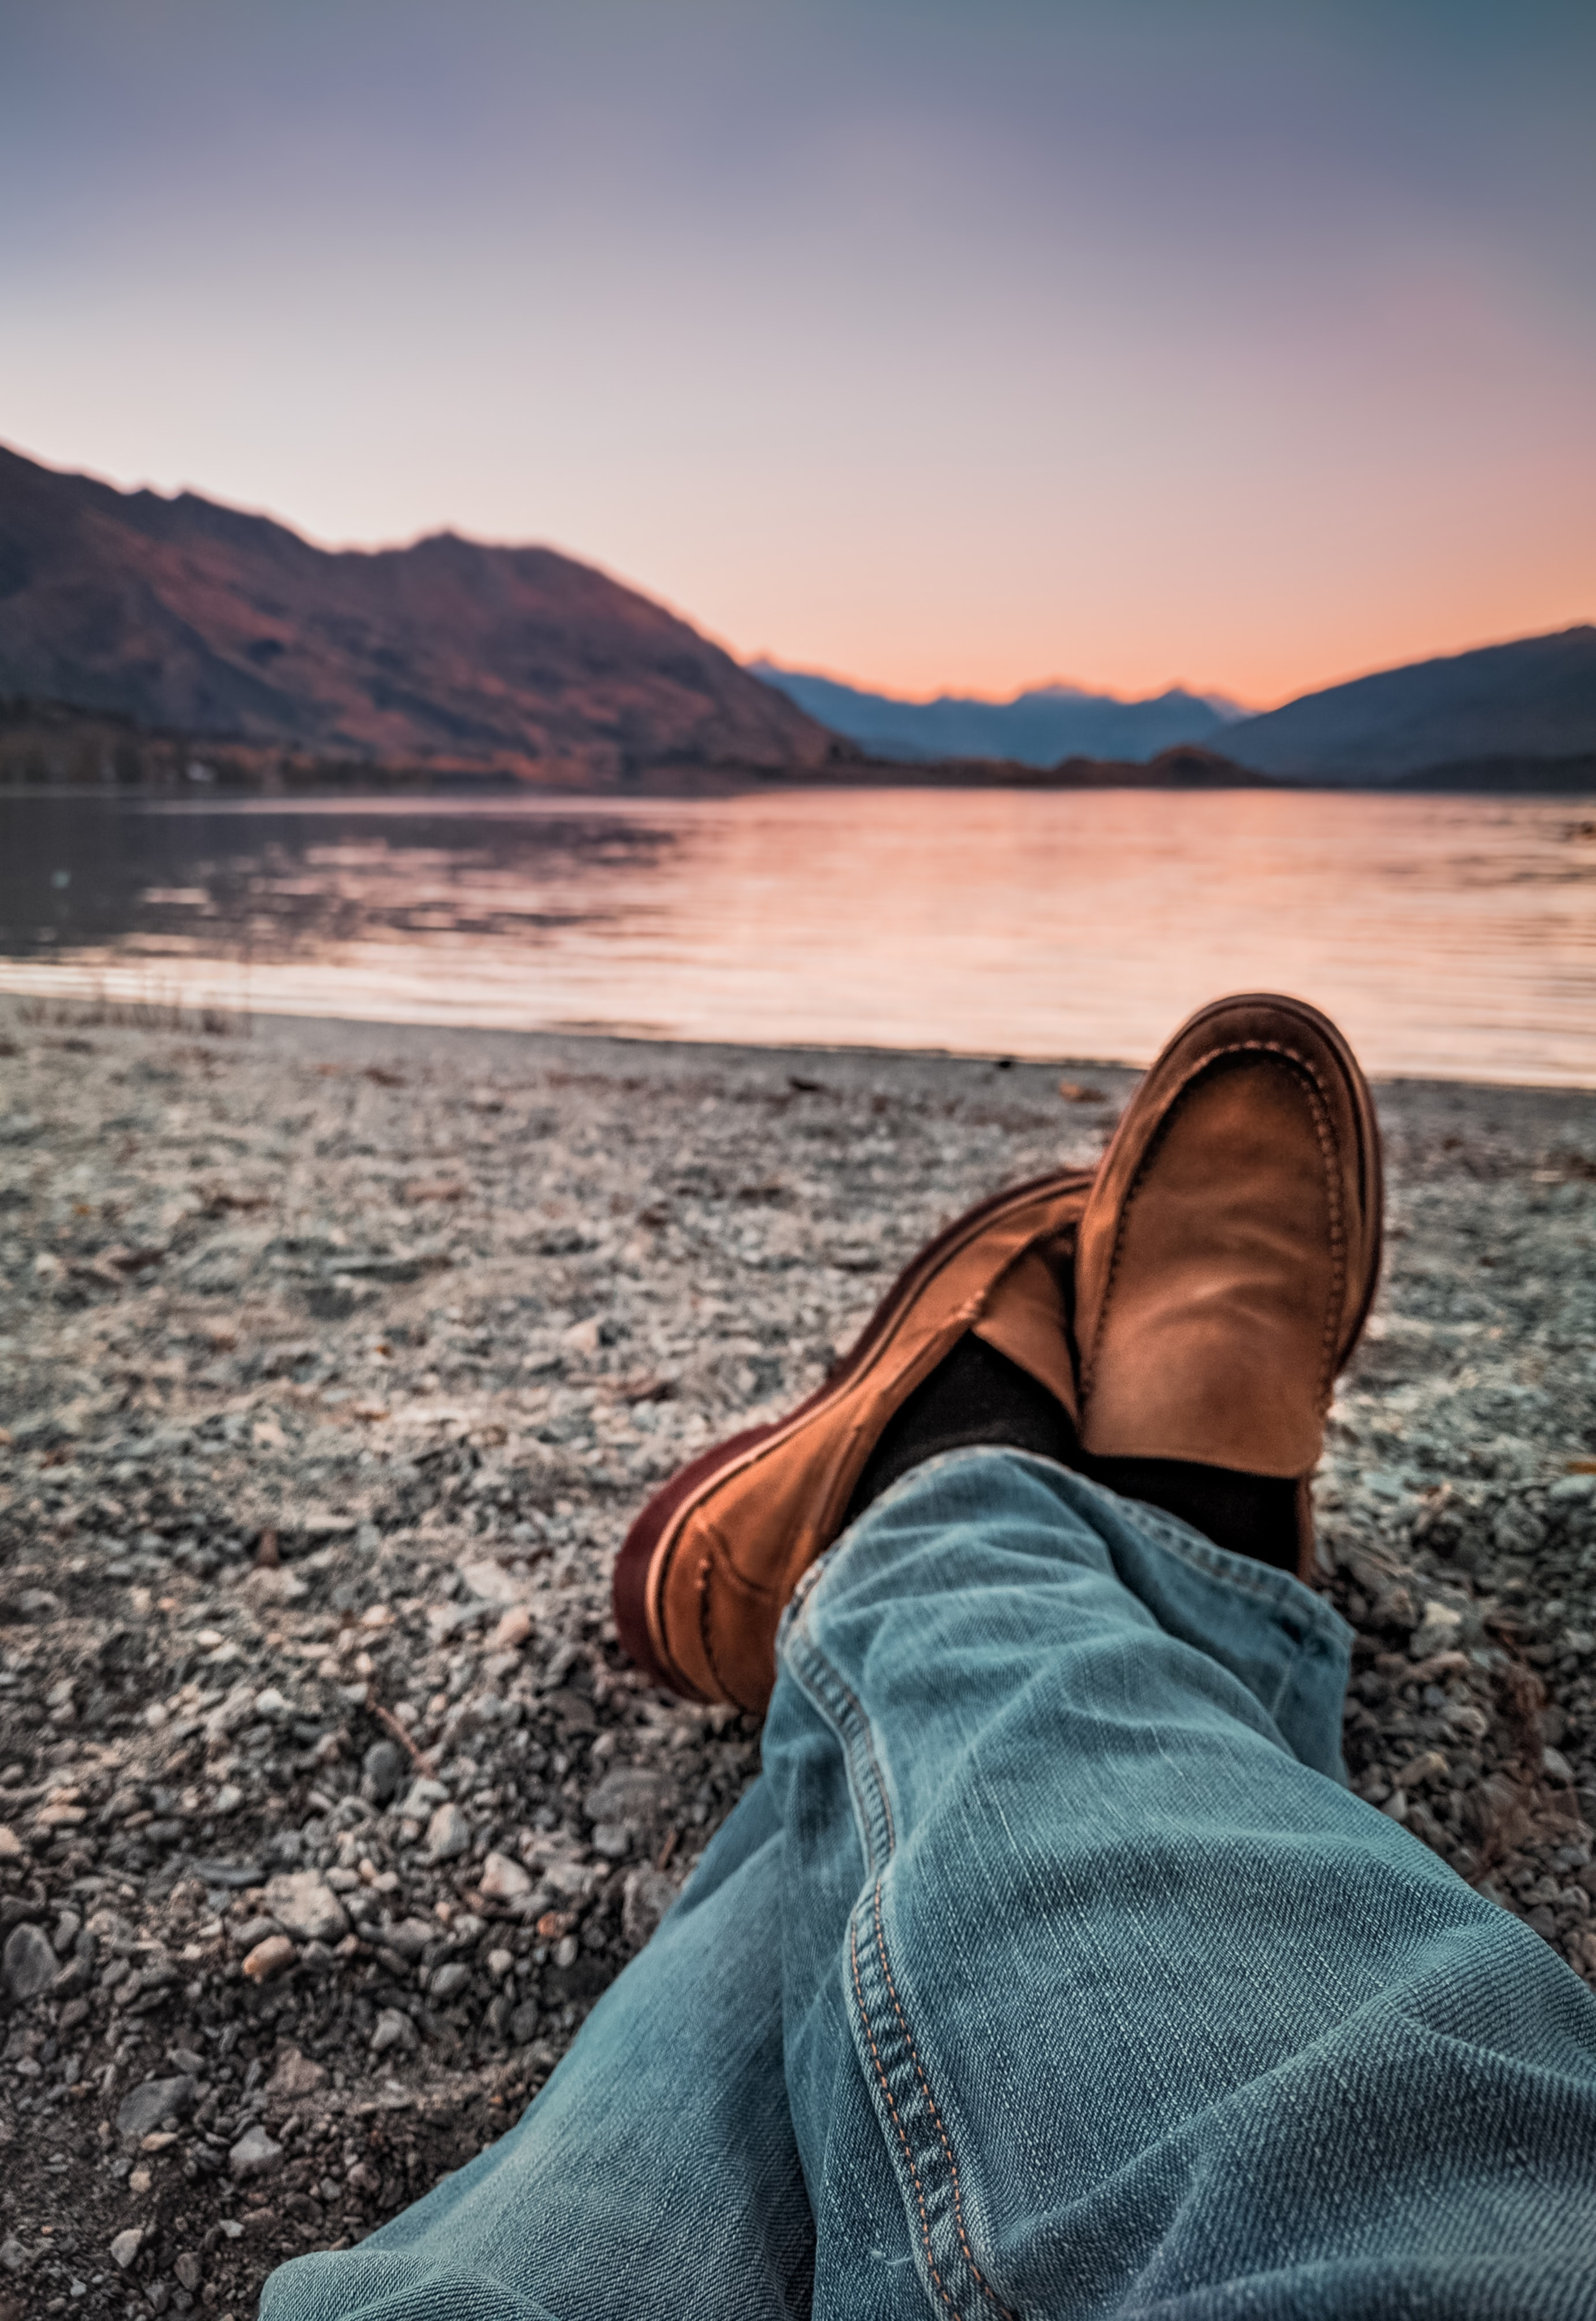 person wearing brown loafers sitting beside body of water